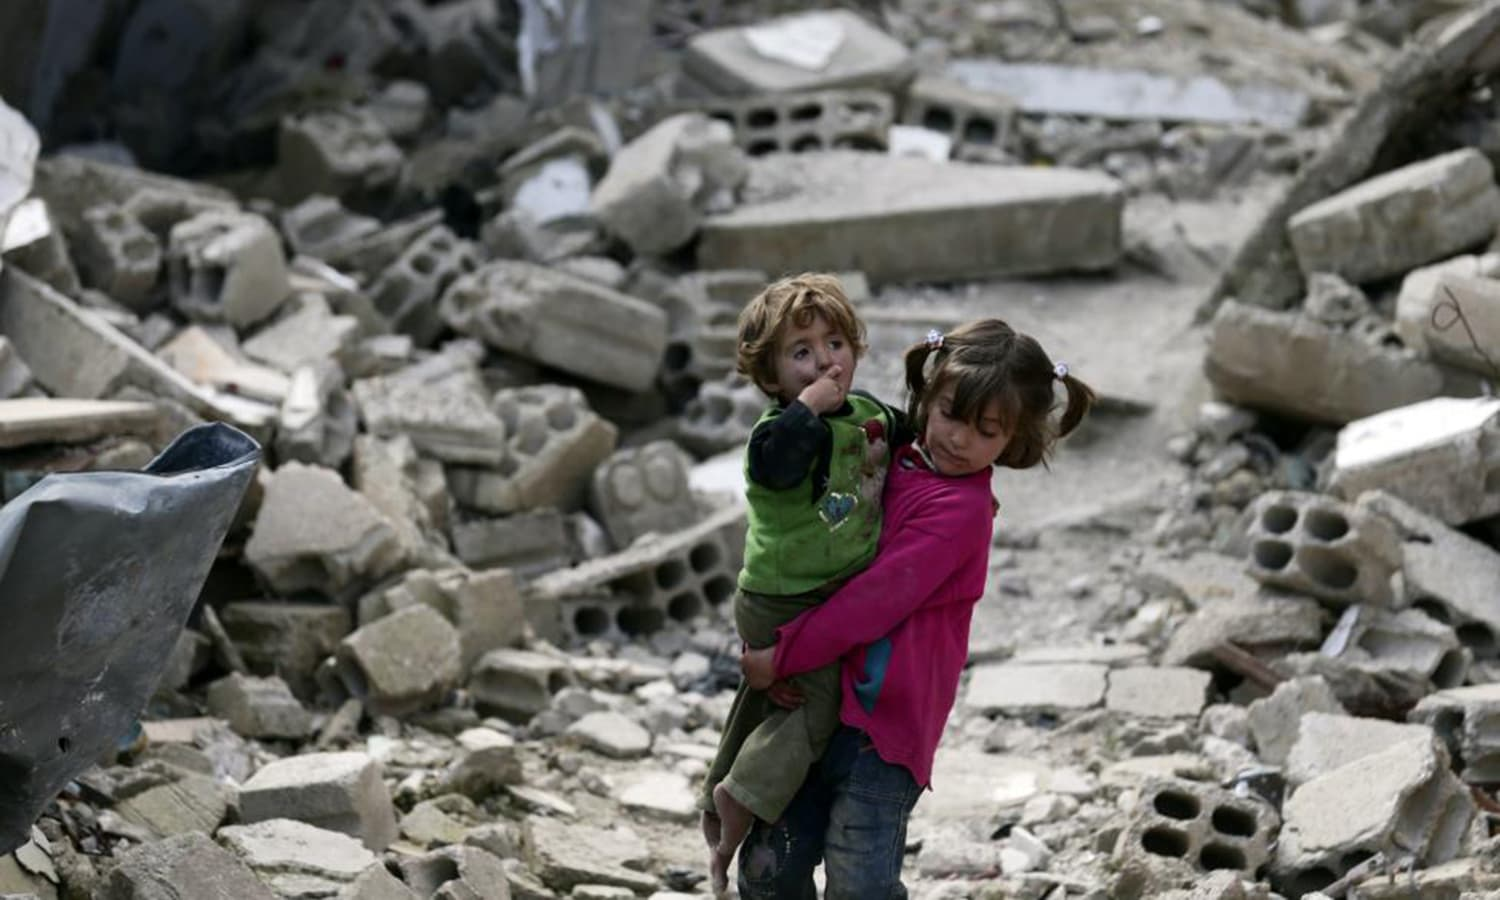 Local resident Israa holds her sister Boutol as they make their way through rubble of damaged buildings in the Douma neighborhood of Damascus. — Reuters